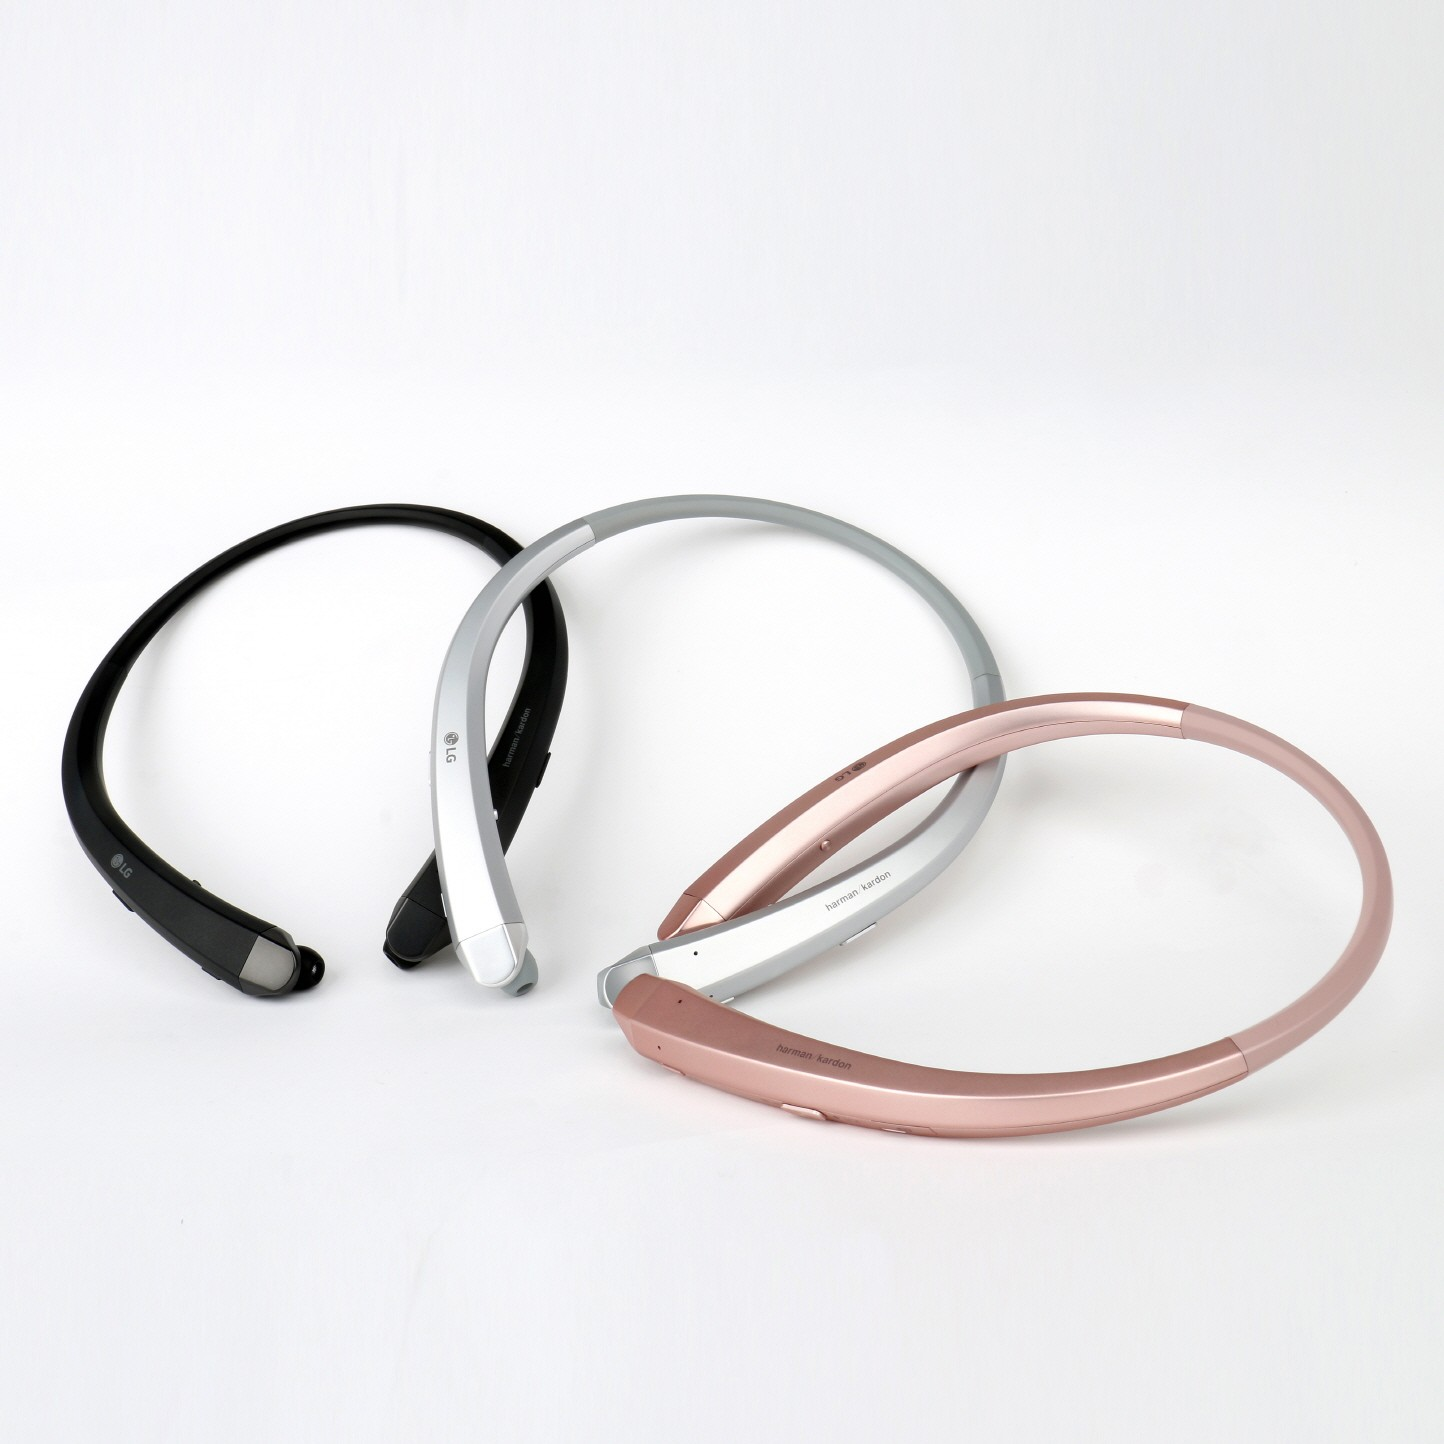 The top and side view of the LG TONE Infinim™ in Black, Silver and Rose Gold